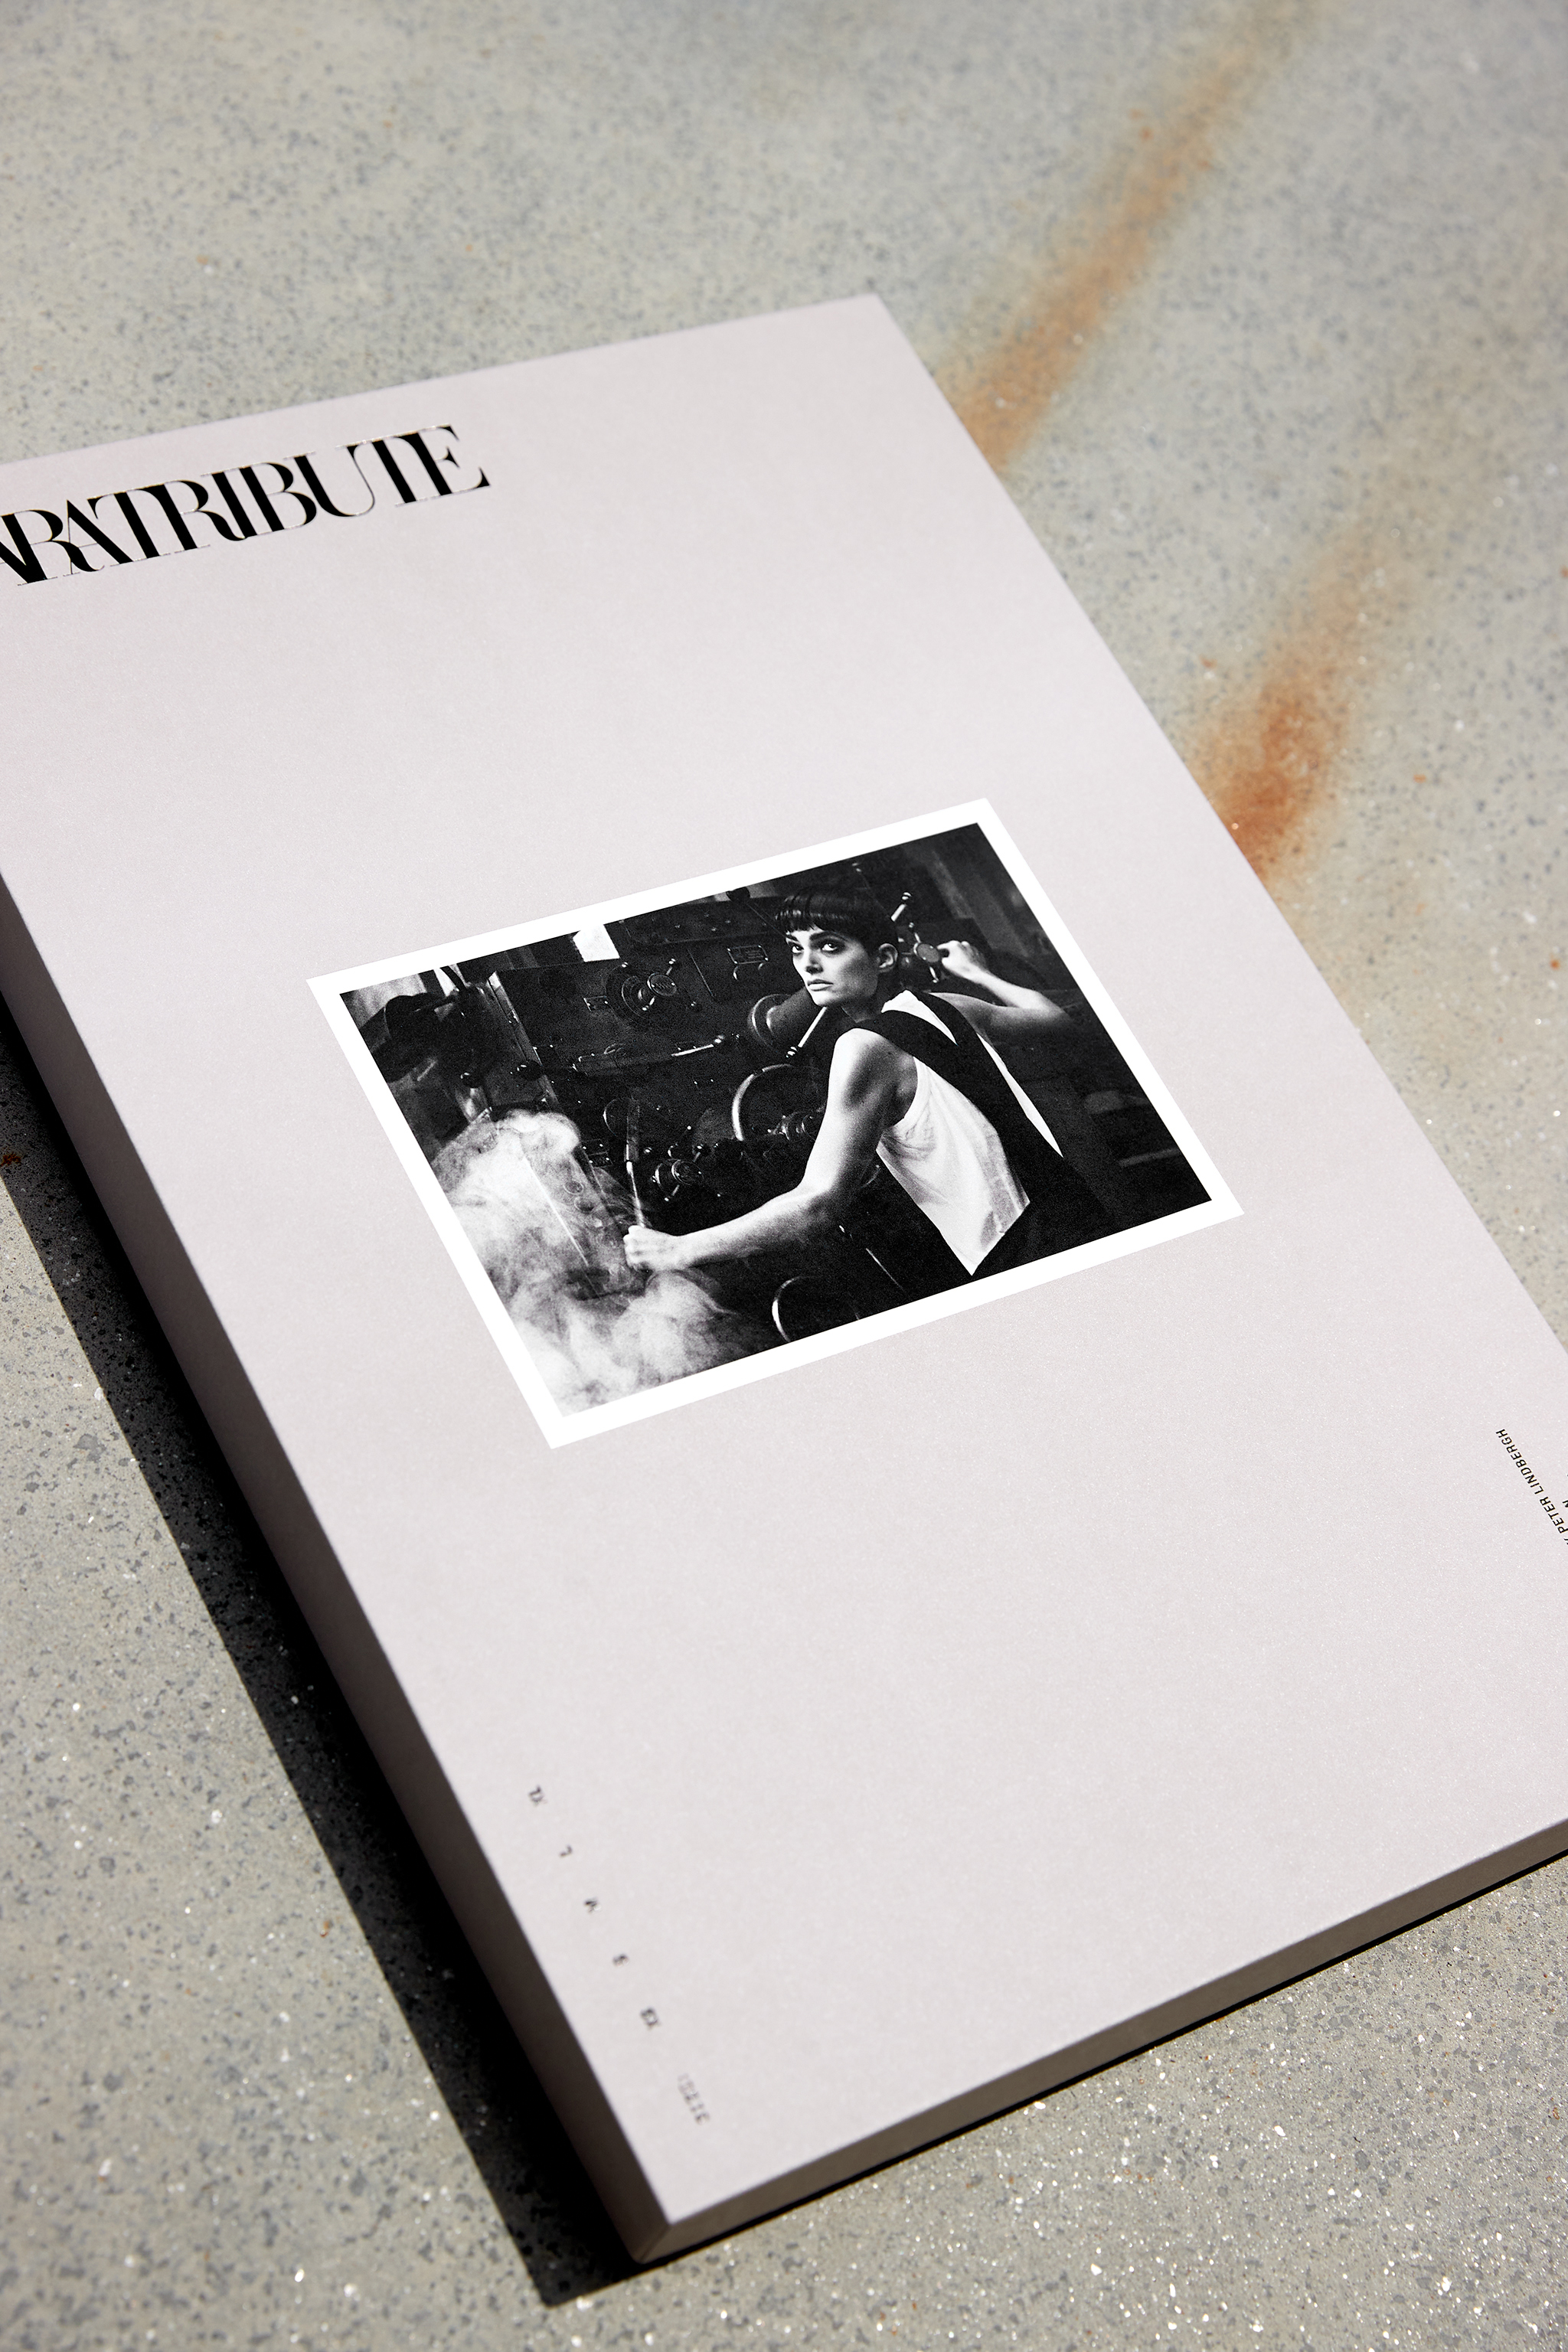 The packaging created by Fabien Baron for Zara's Peter Lindbergh T-shirts and hoodies.